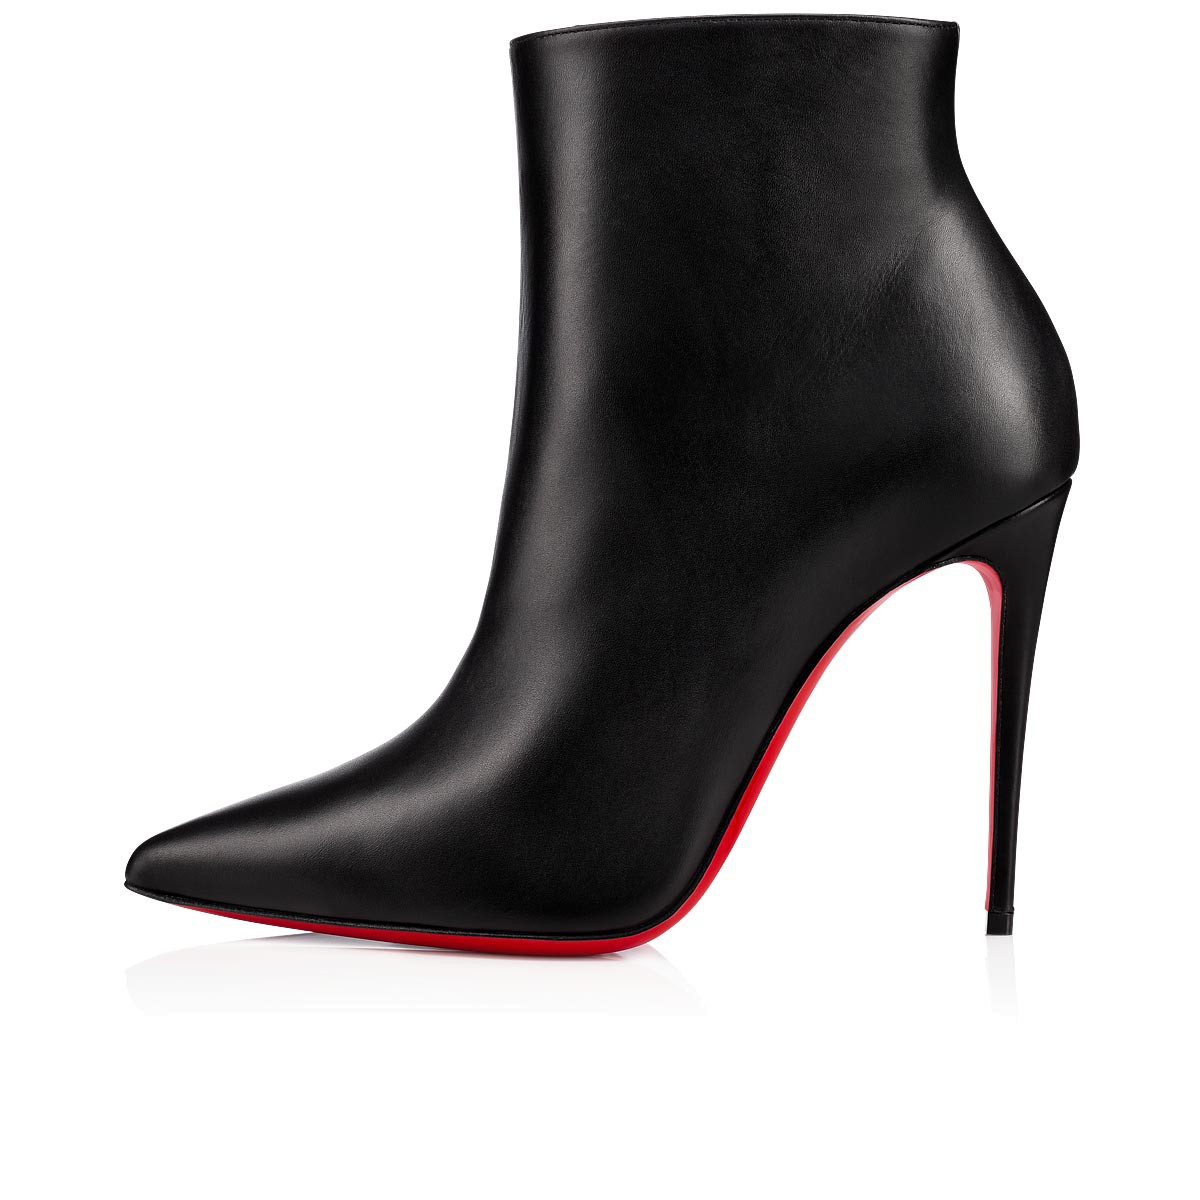 Women Shoes - So Kate Booty - Christian Louboutin